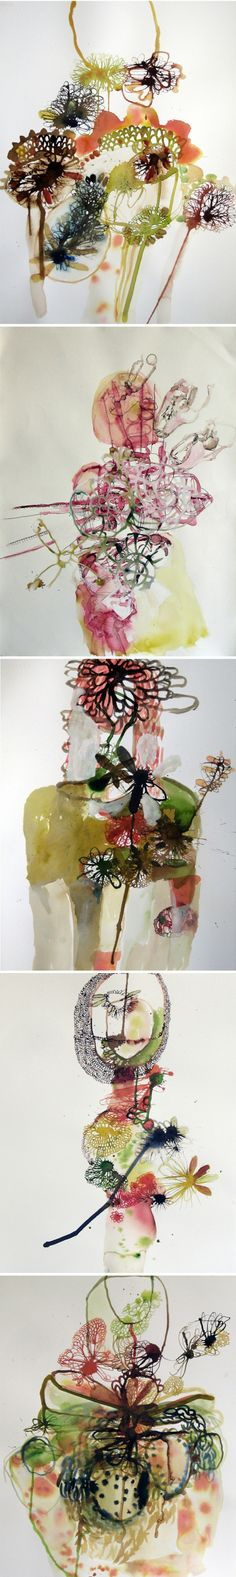 Elizabeth Terhune - abstract flower paintings.